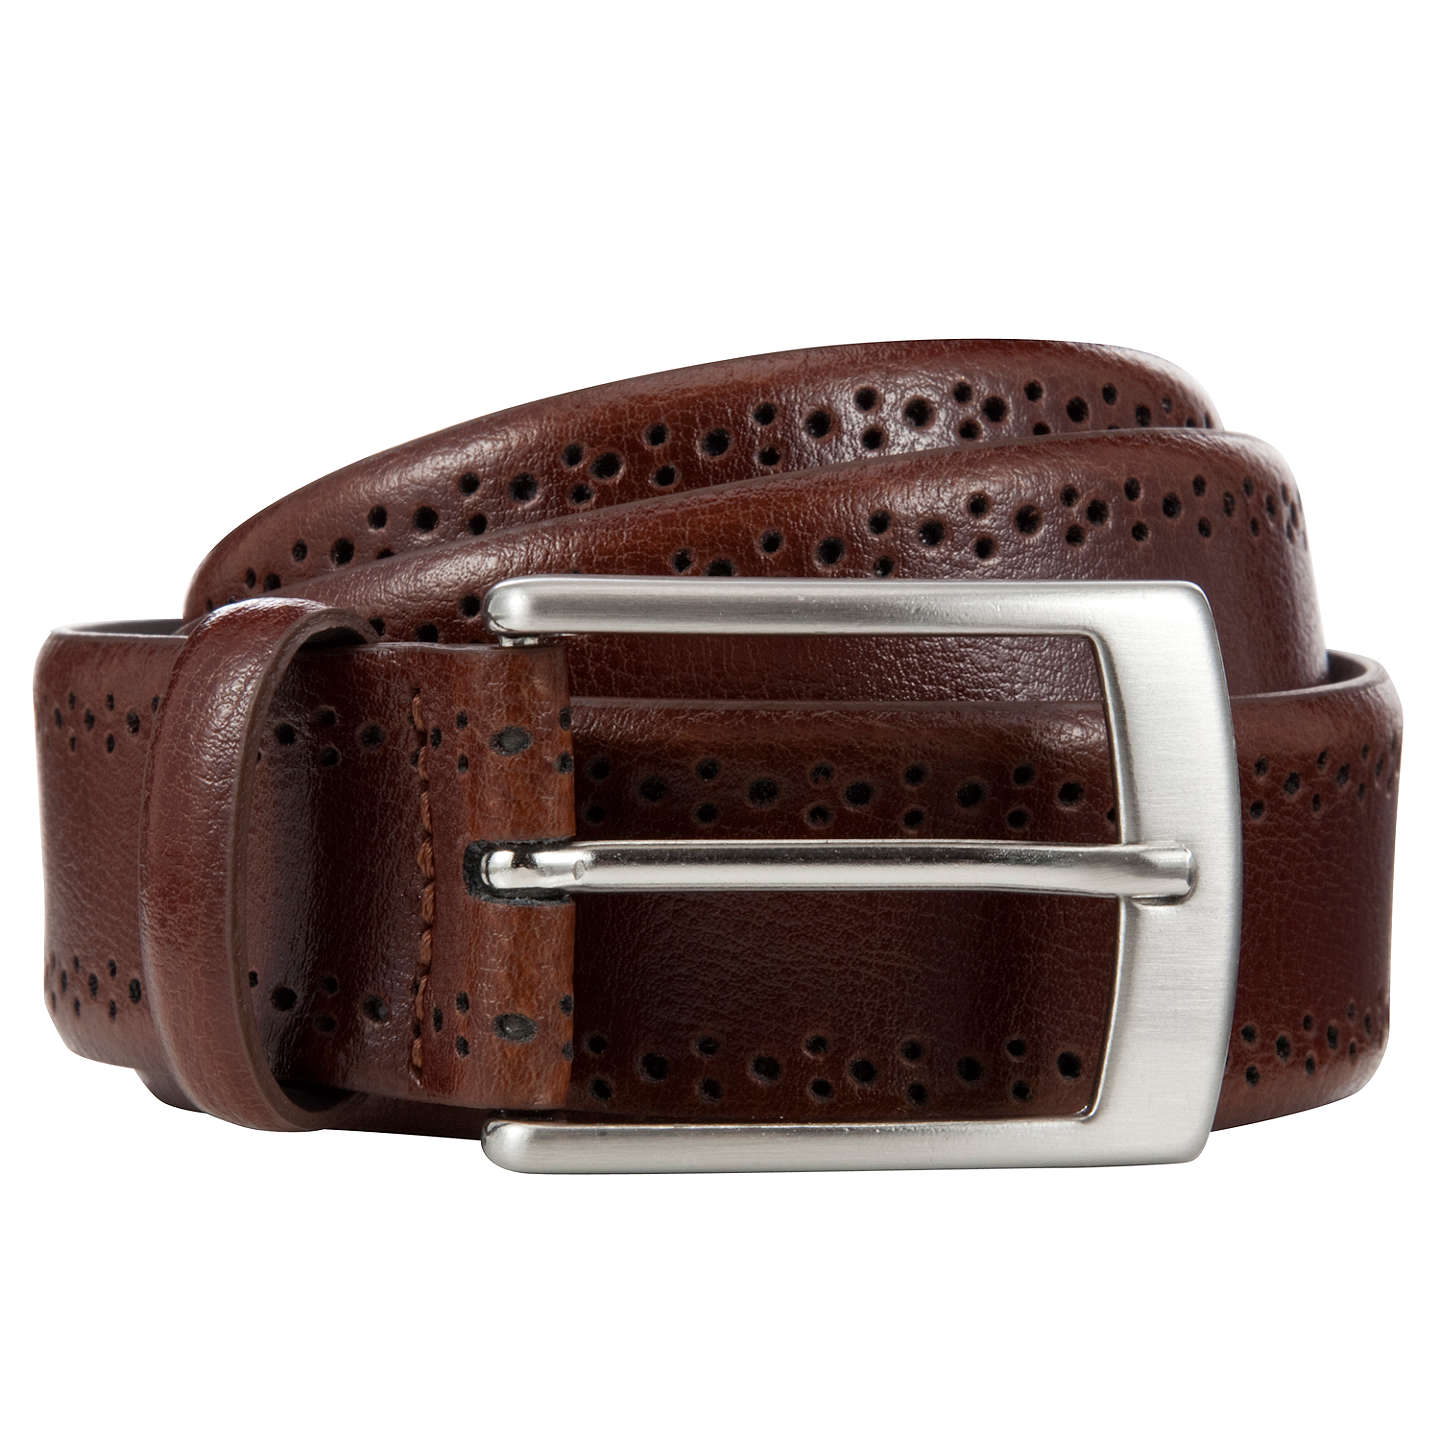 BuyJohn Lewis Made In Italy Brogue Belt, Brown, S Online at johnlewis.com